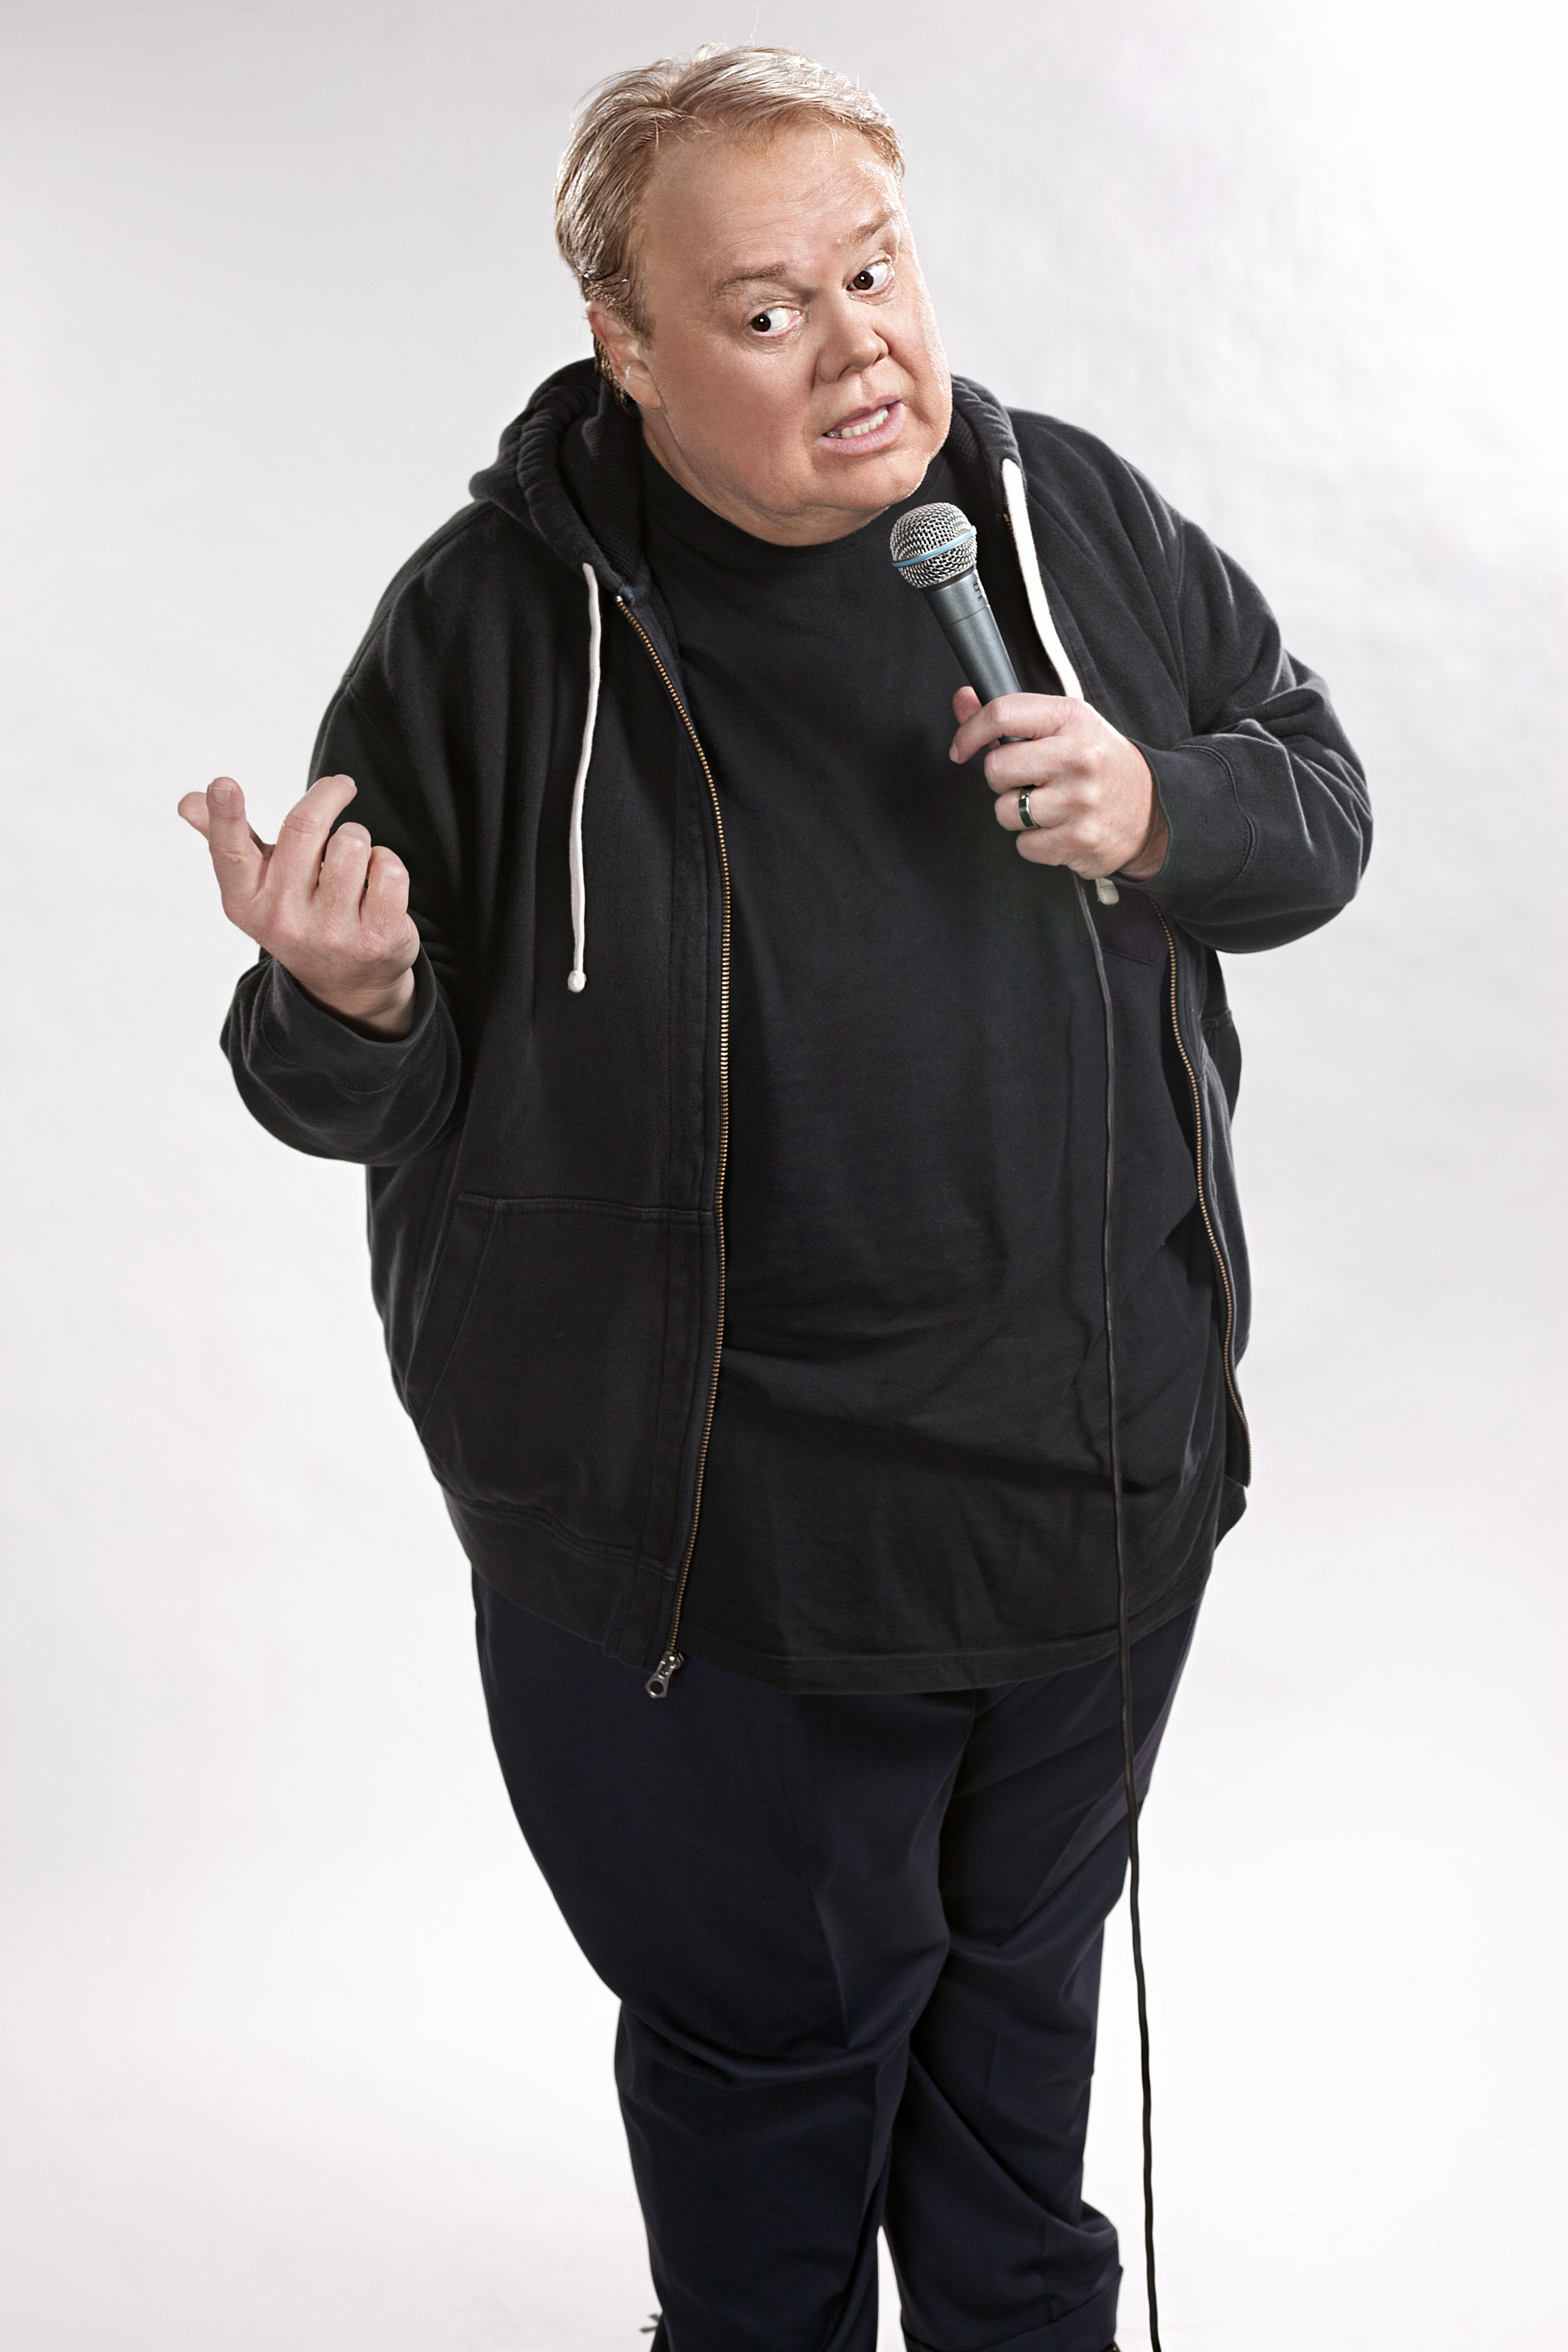 Louie Anderson: Big Baby Boomer - http://x.co/mFeO